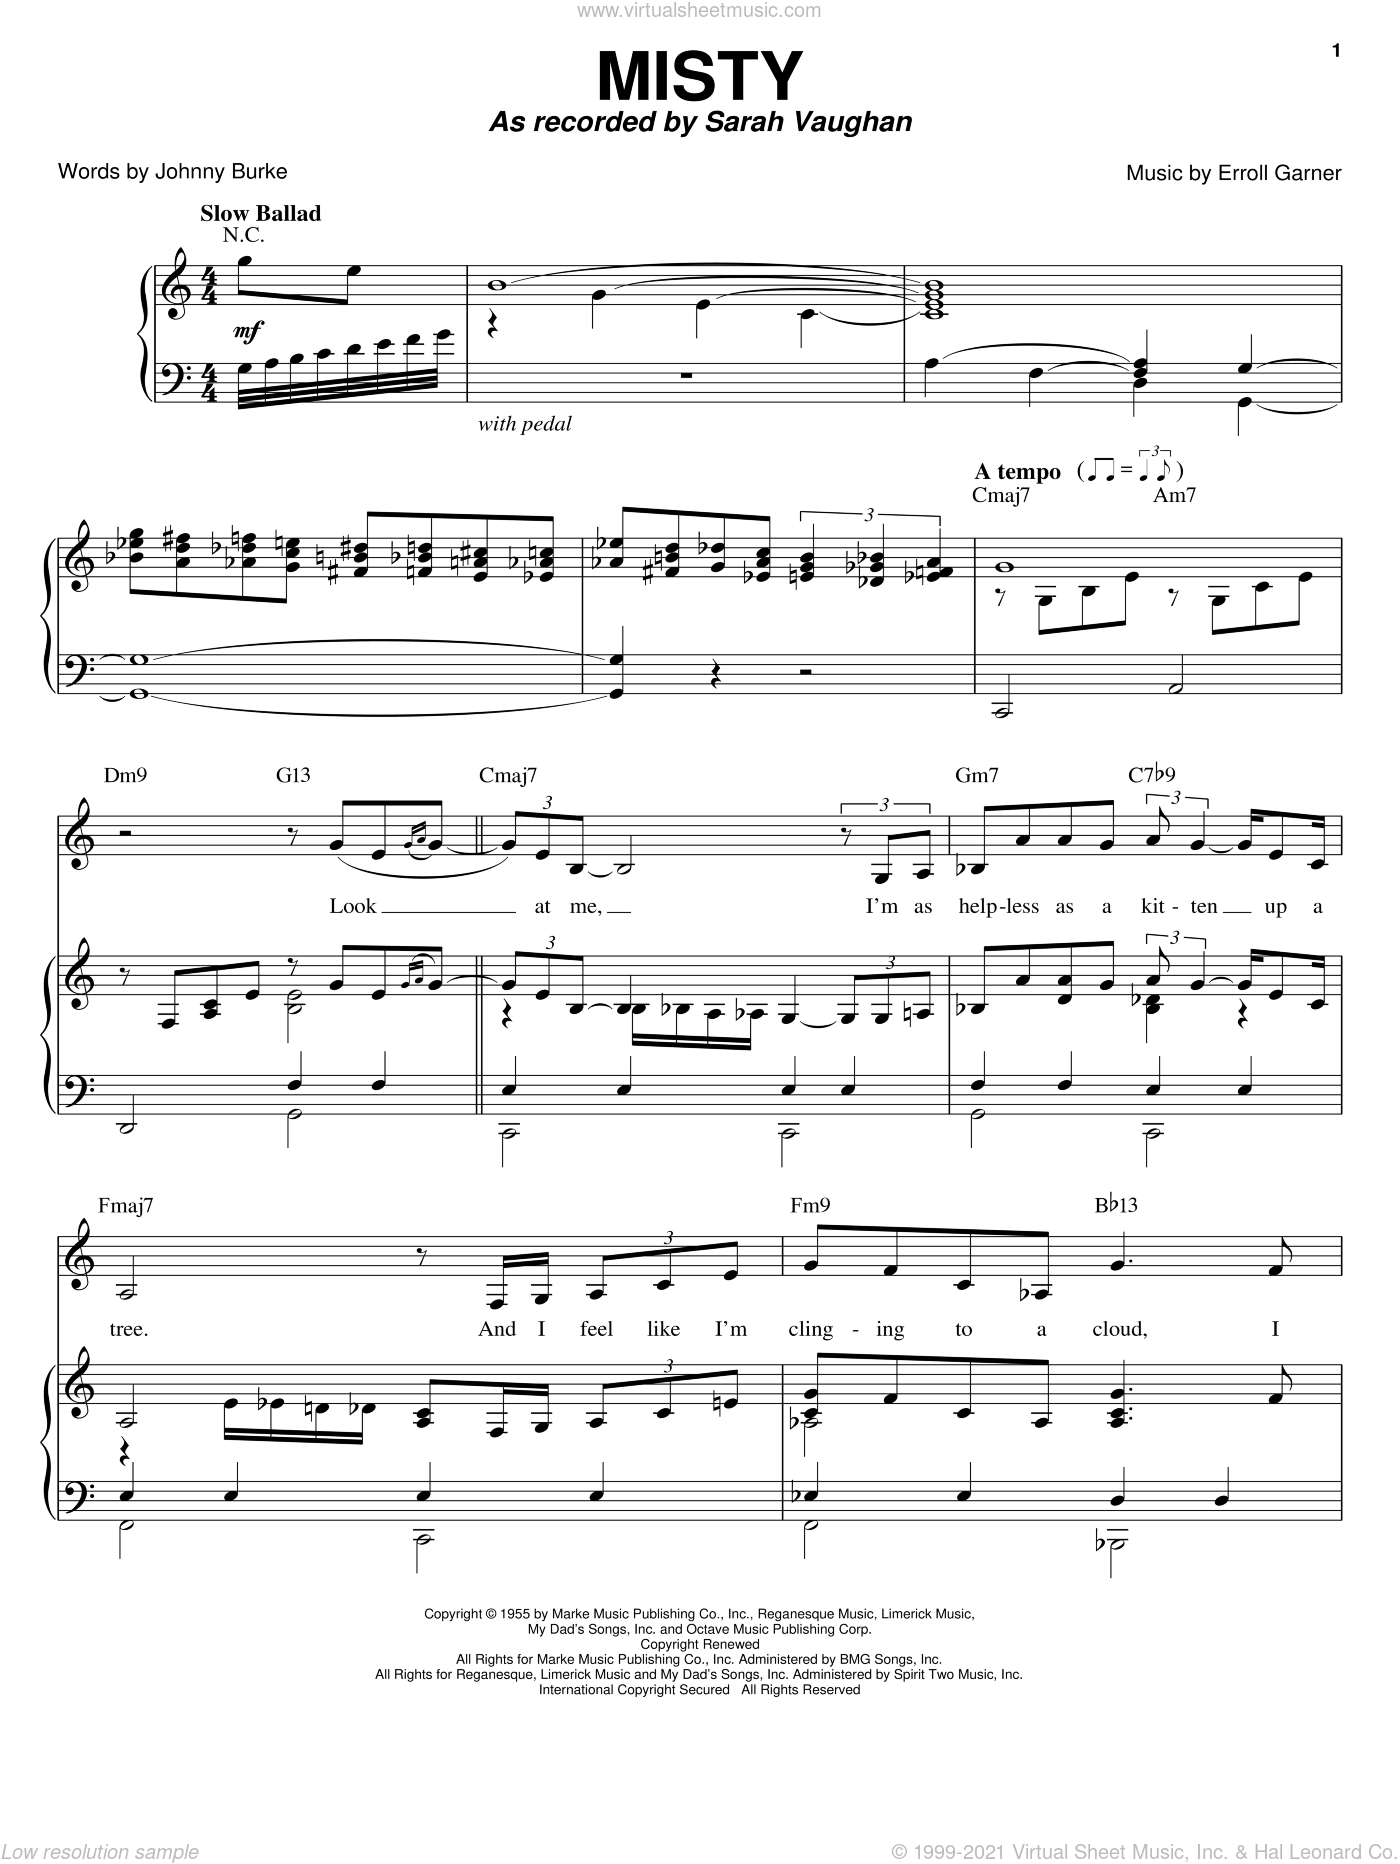 Misty sheet music for voice, piano or guitar by Sarah Vaughan, Ella Fitzgerald, Johnny Mathis, Kenny Rogers, Ray Stevens, Stephane Grappelli, Erroll Garner and John Burke, intermediate skill level